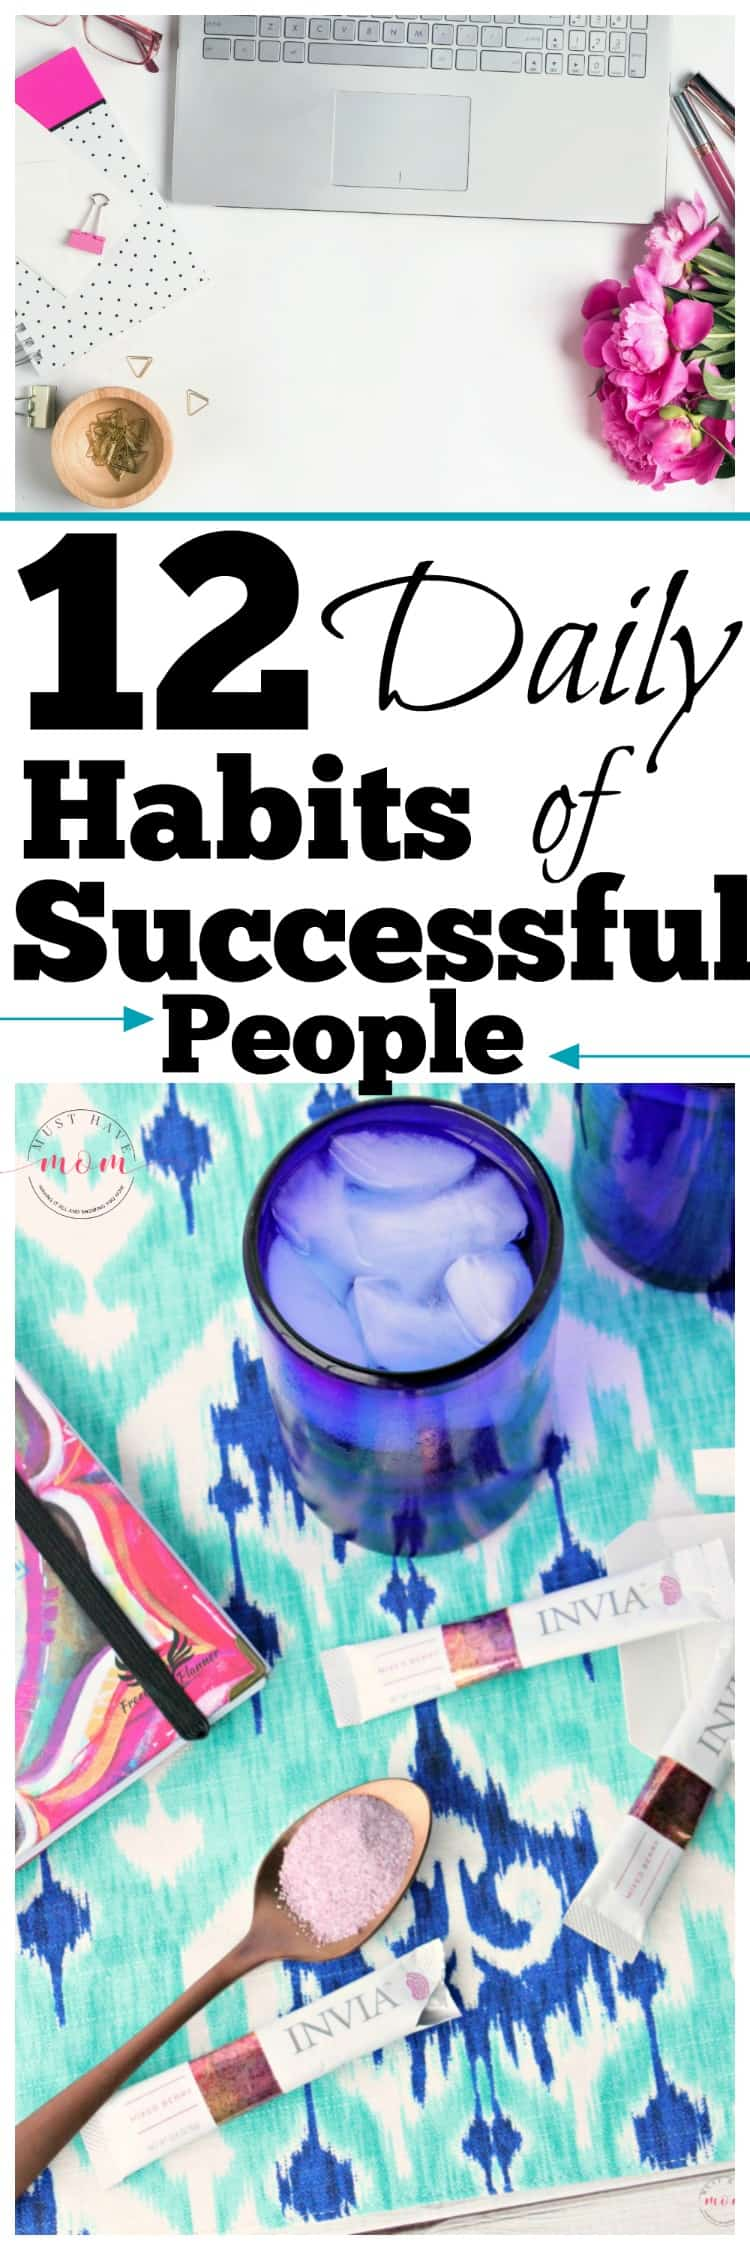 12 Daily habits of successful people! Adopt these daily routines and habits to increase focus, drive and success.